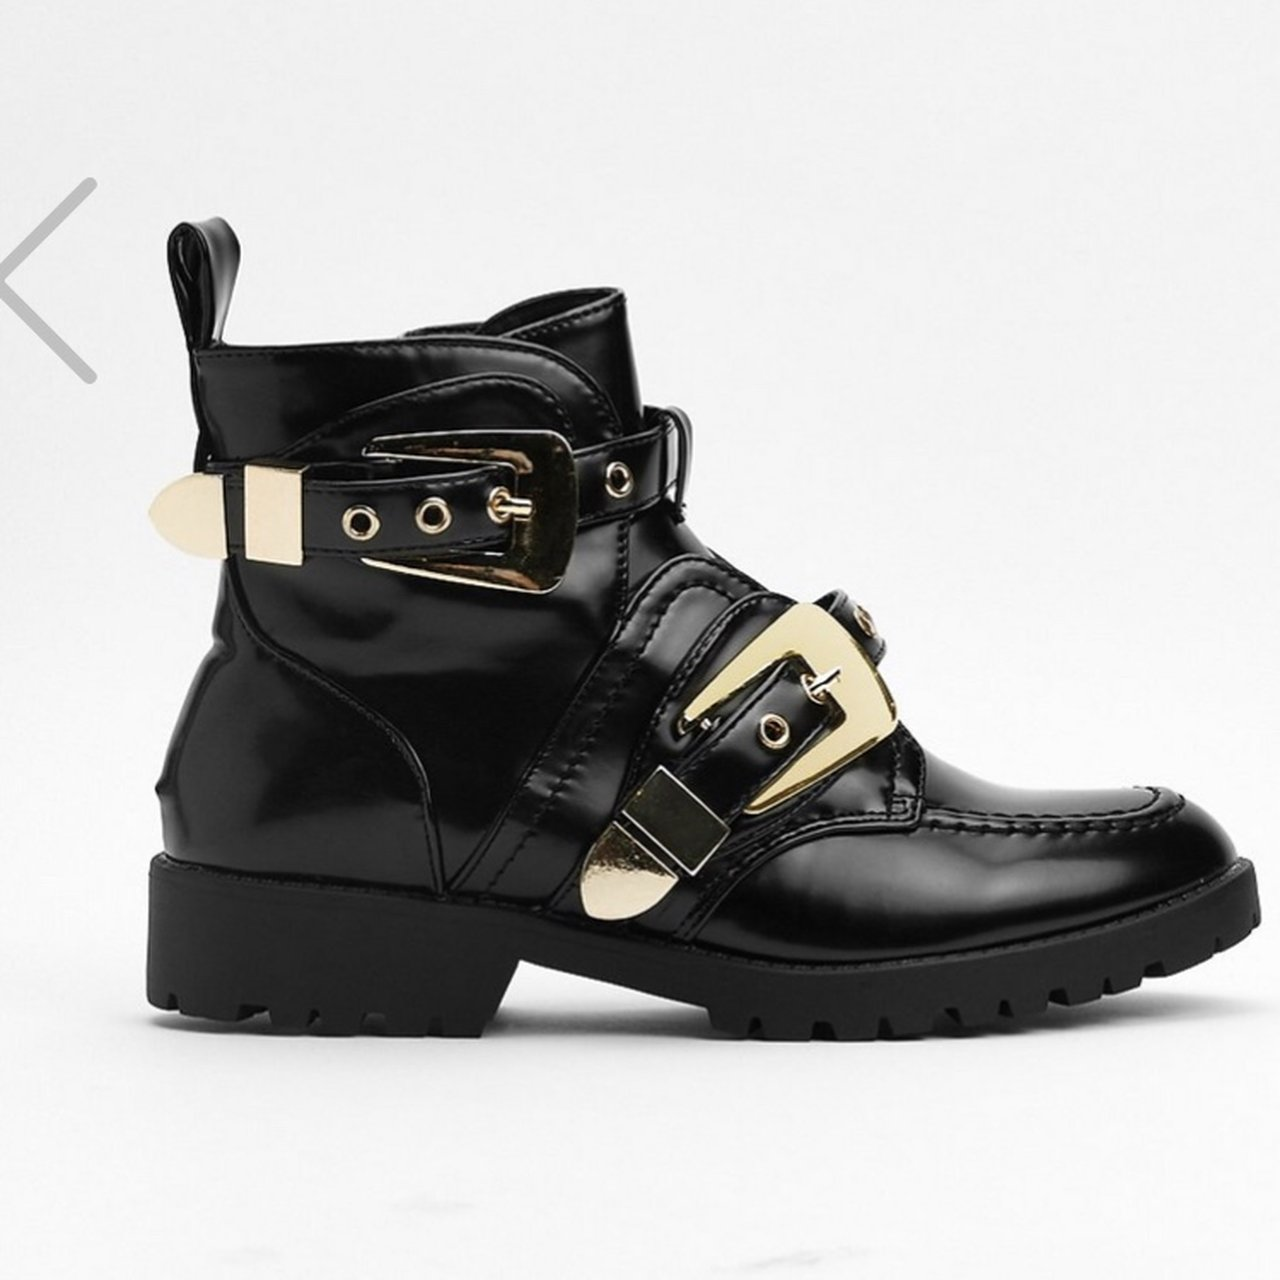 5b31ae98fda3 Black Leather Patent Ankle Boots Double gold buckle has - Depop